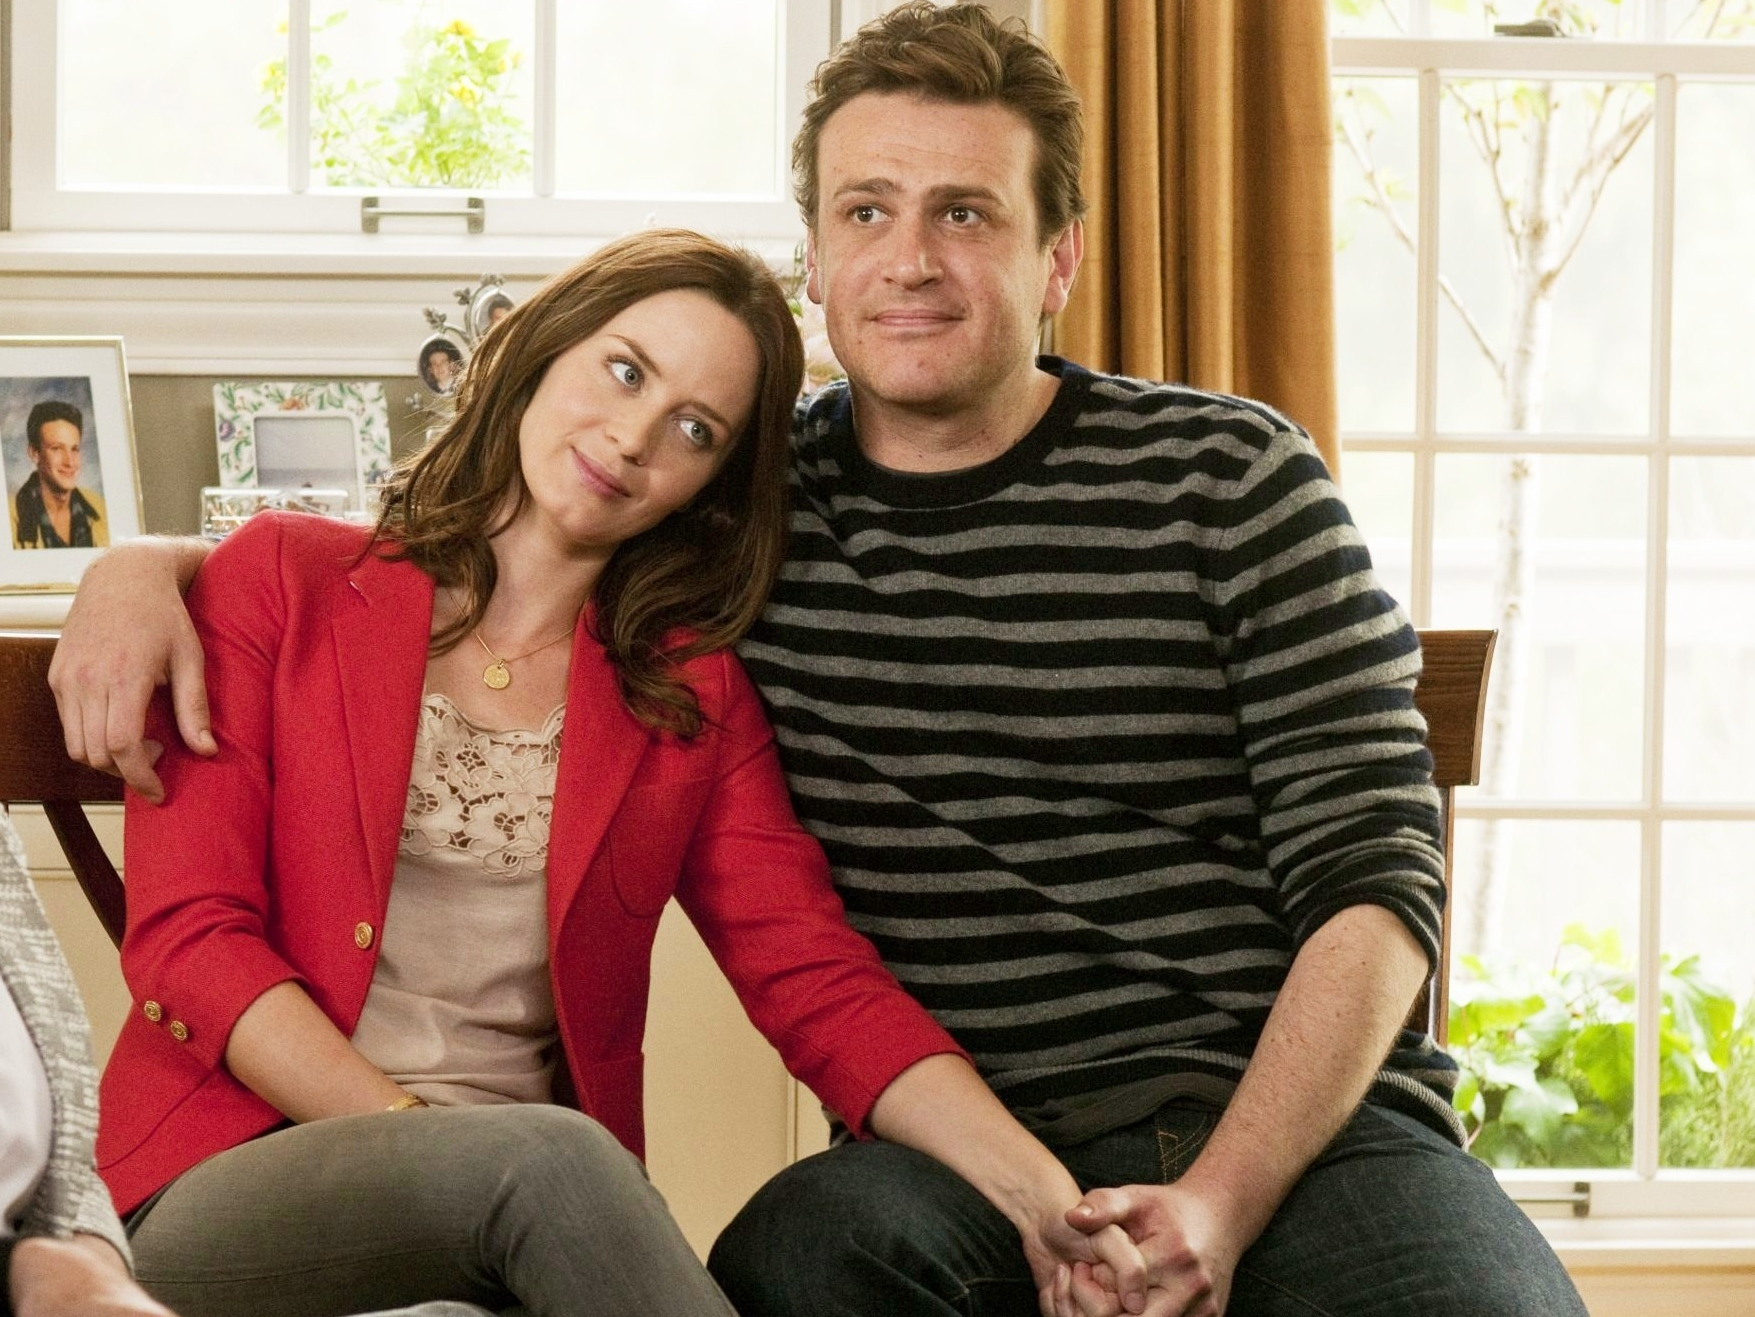 Tribeca Opens with Jason Segel/Emily Blunt 'Engagement'